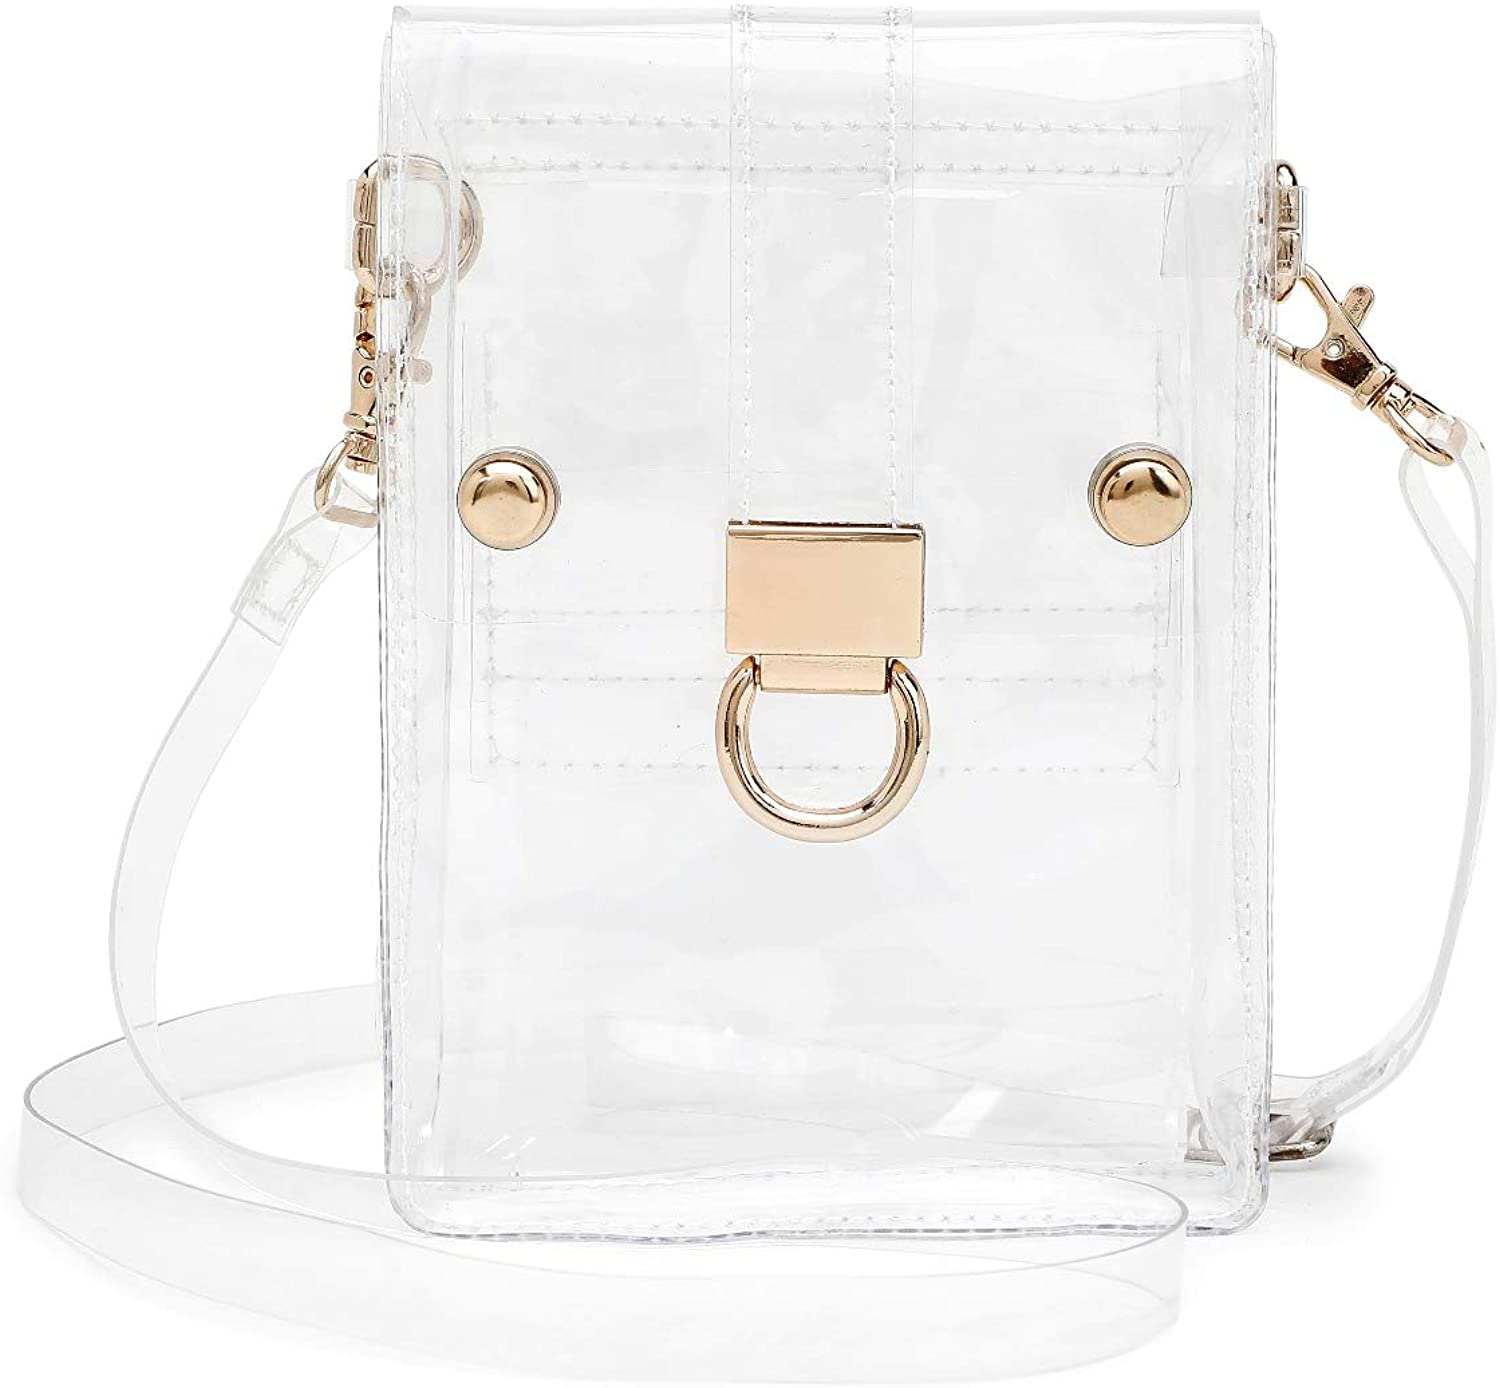 SharPlus Clear Crossbody Bag Purse for Women, Stadium Approved Plastic Transparent Bag Cell Phone Case Pouch Handbag for NFL & PGA Sporting Events, Concerts, Prom, Work & School